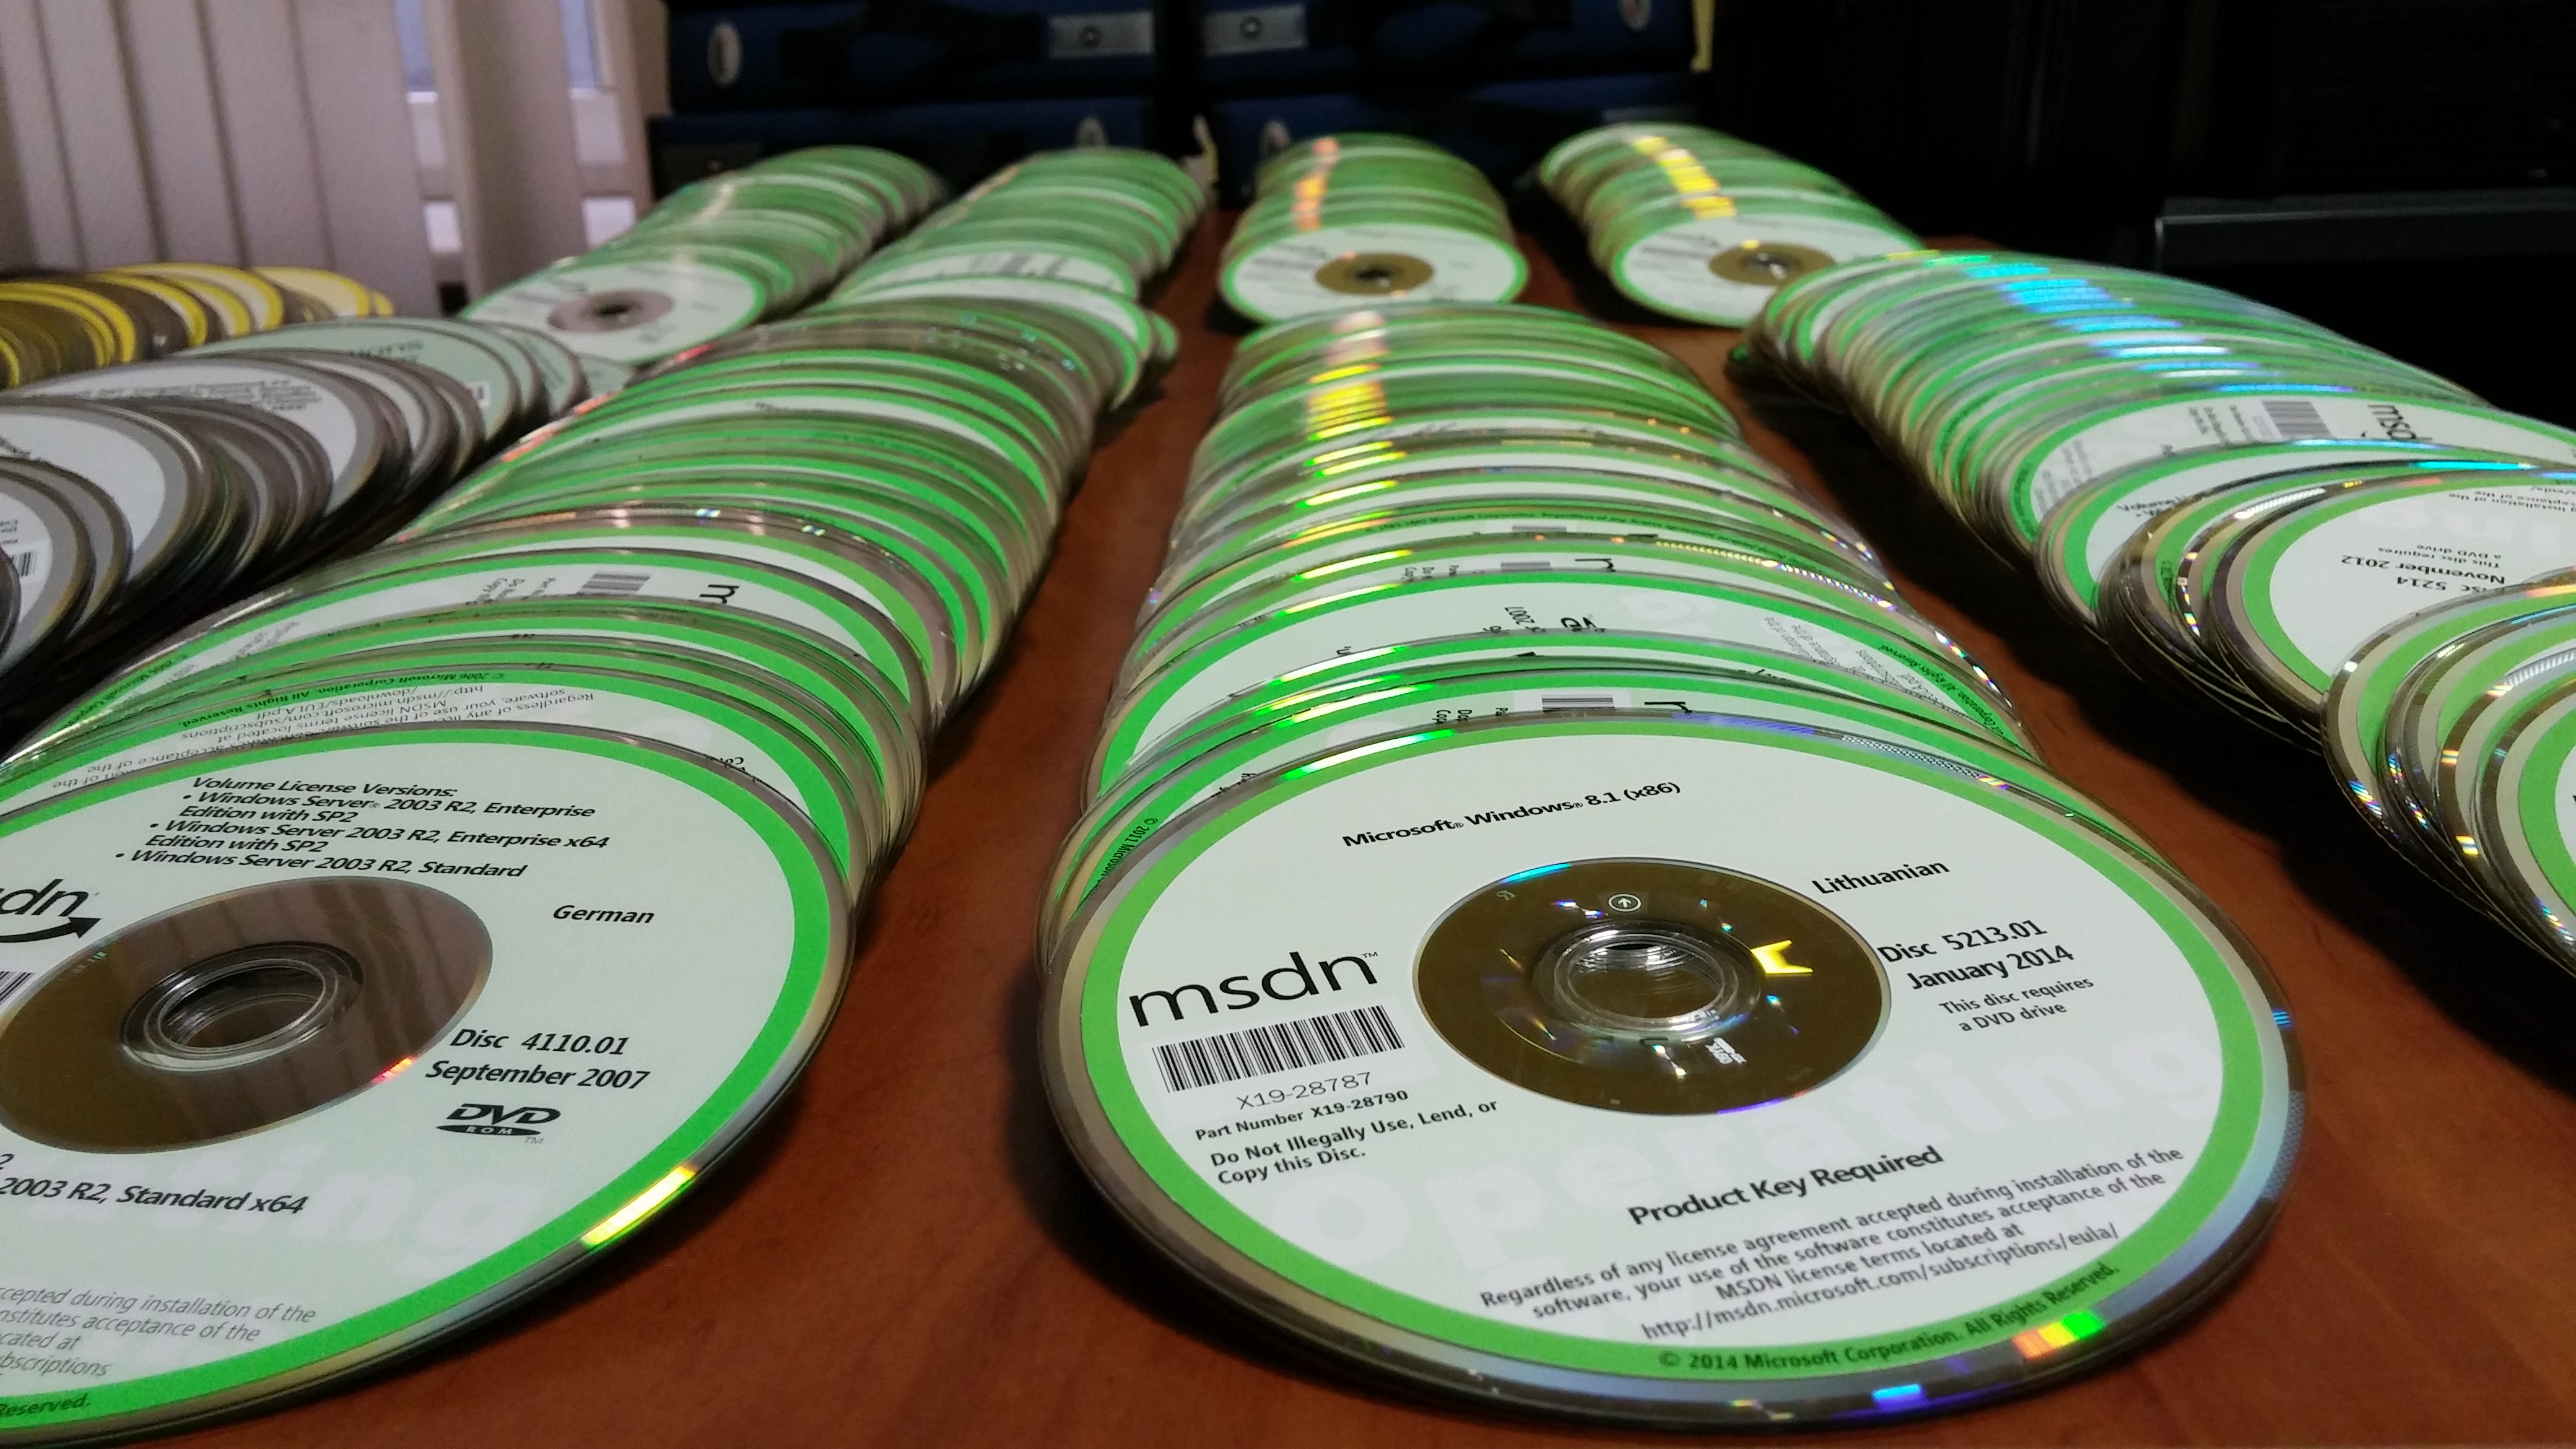 More than 1500 MSDN disks